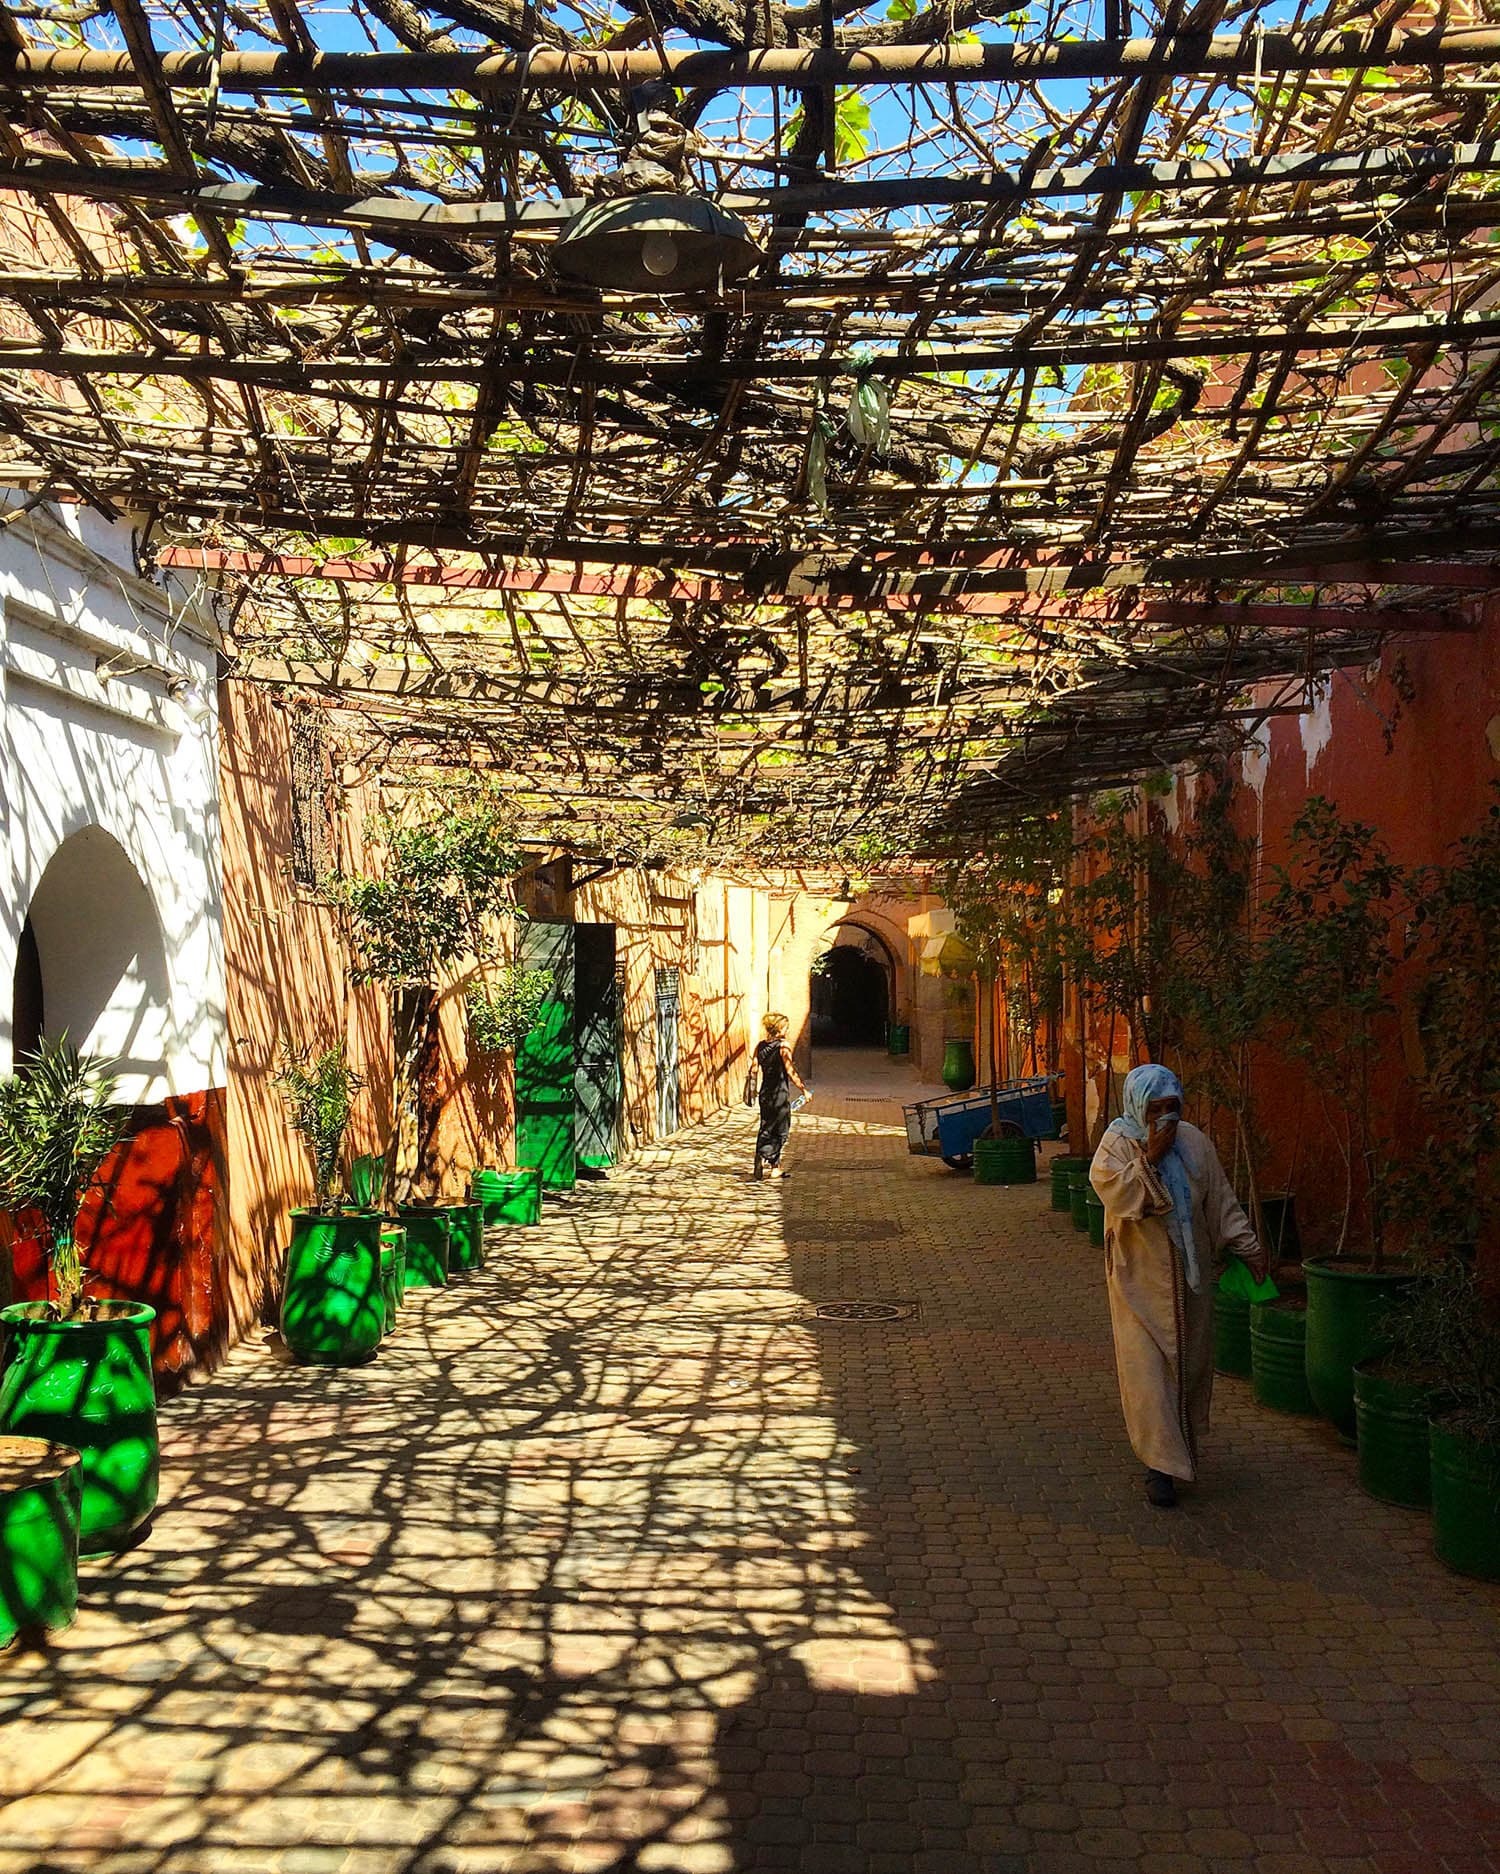 The alleys in Marrakech's medina.